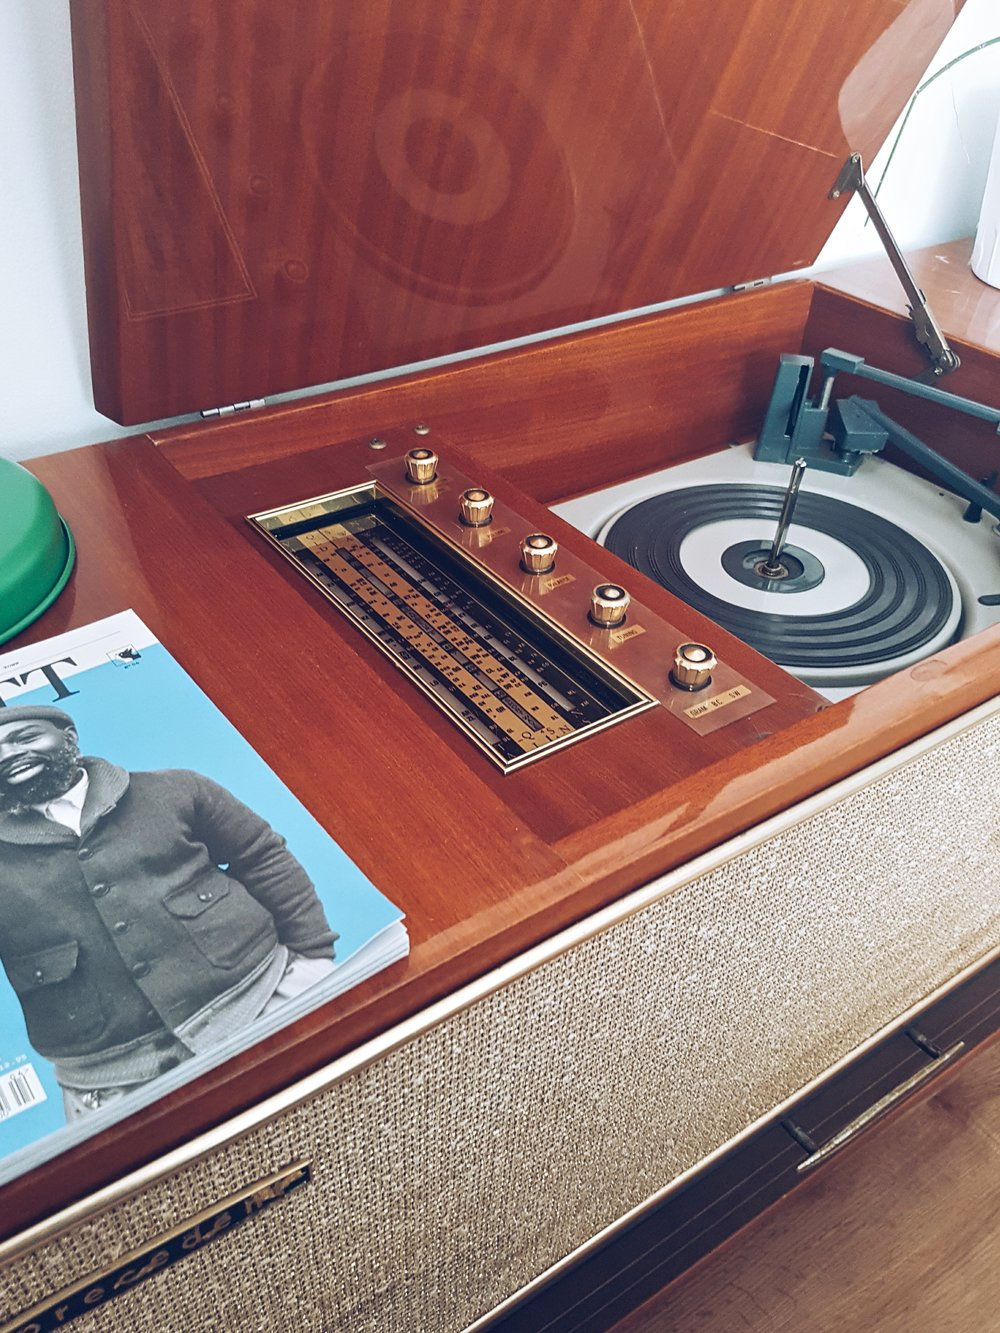 One of Adrian's favourite elements in the living room is his vintage record player from the 1960's.